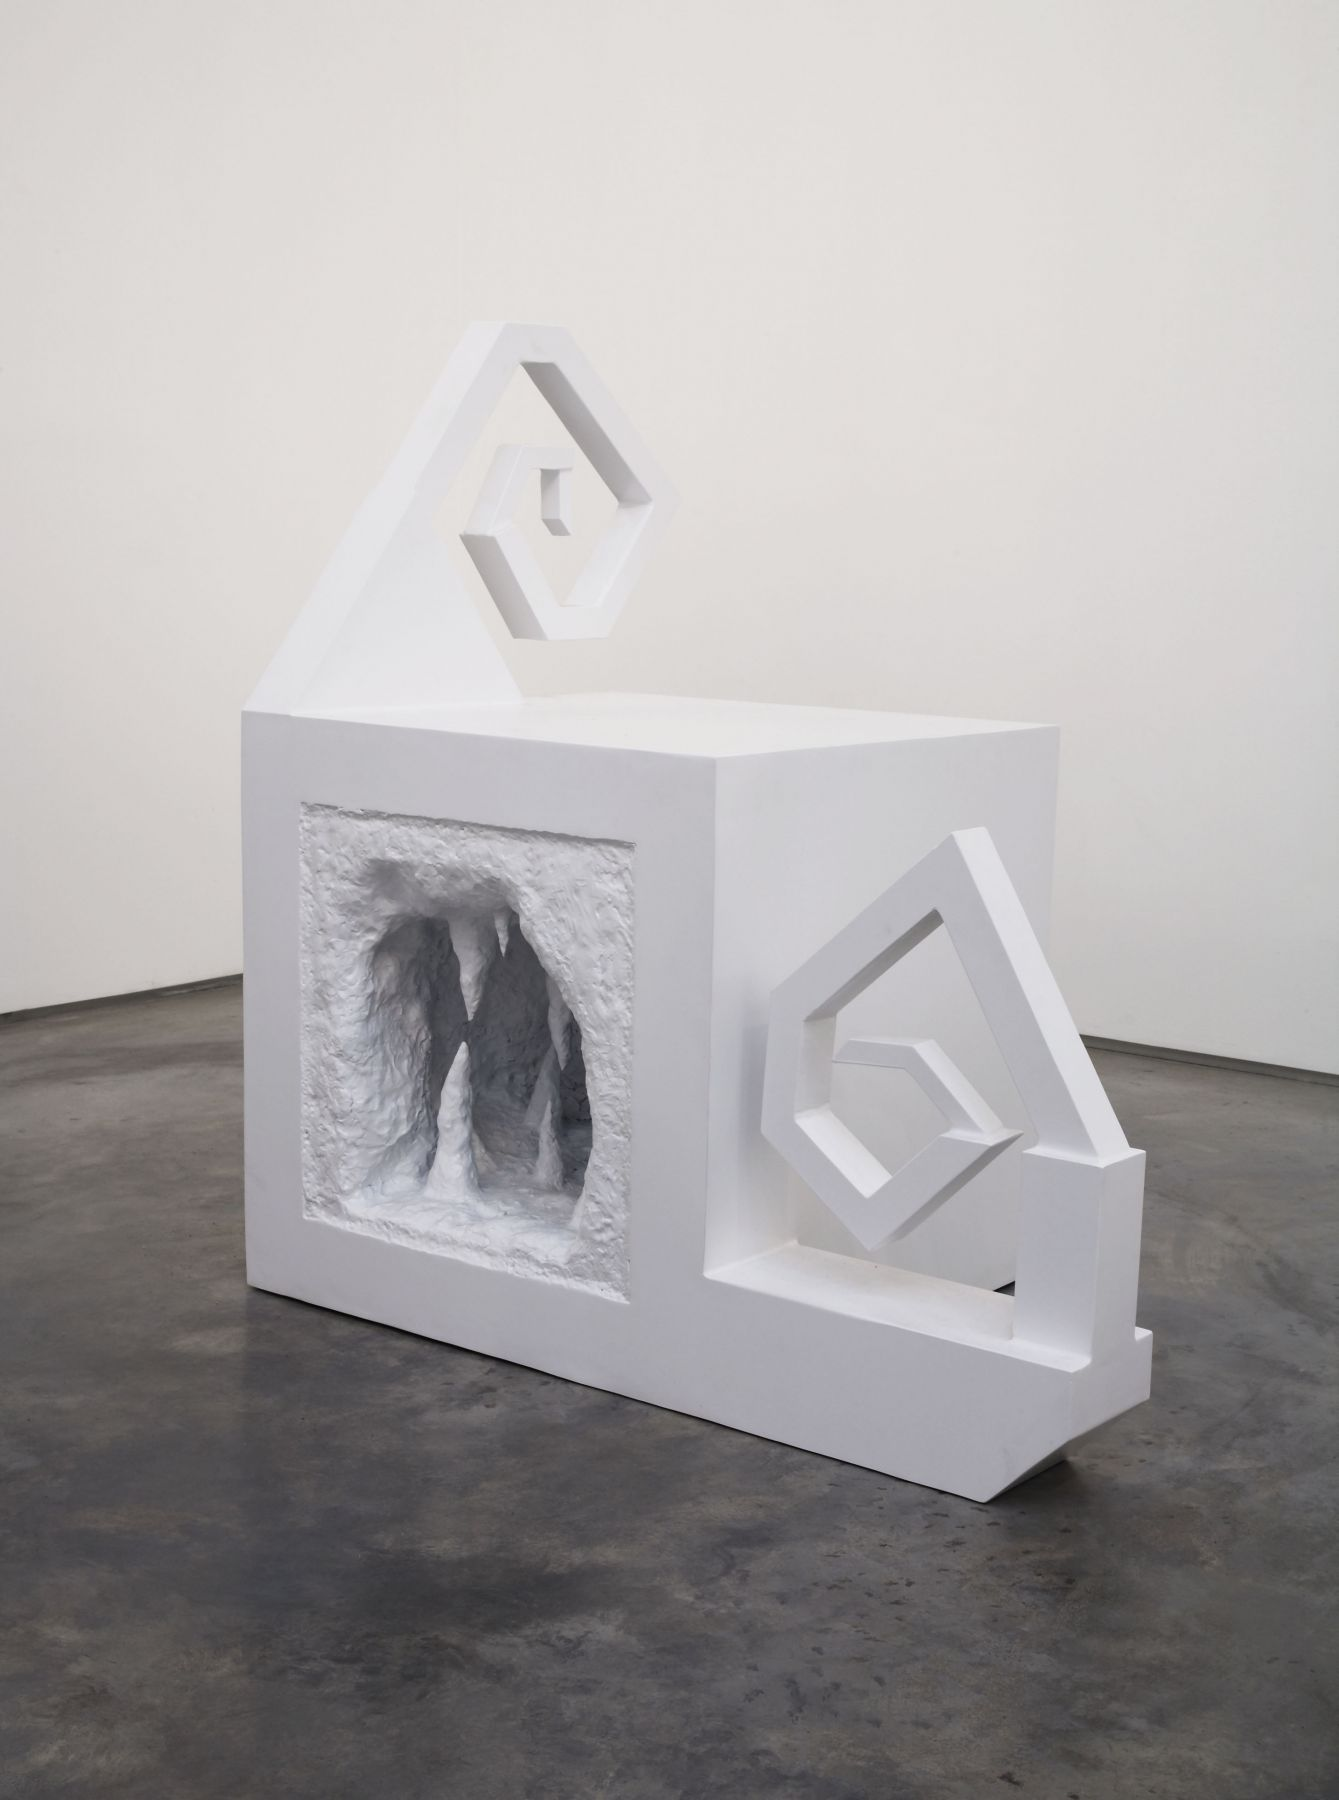 sculpture by liz craft with stalactites and stalagmites